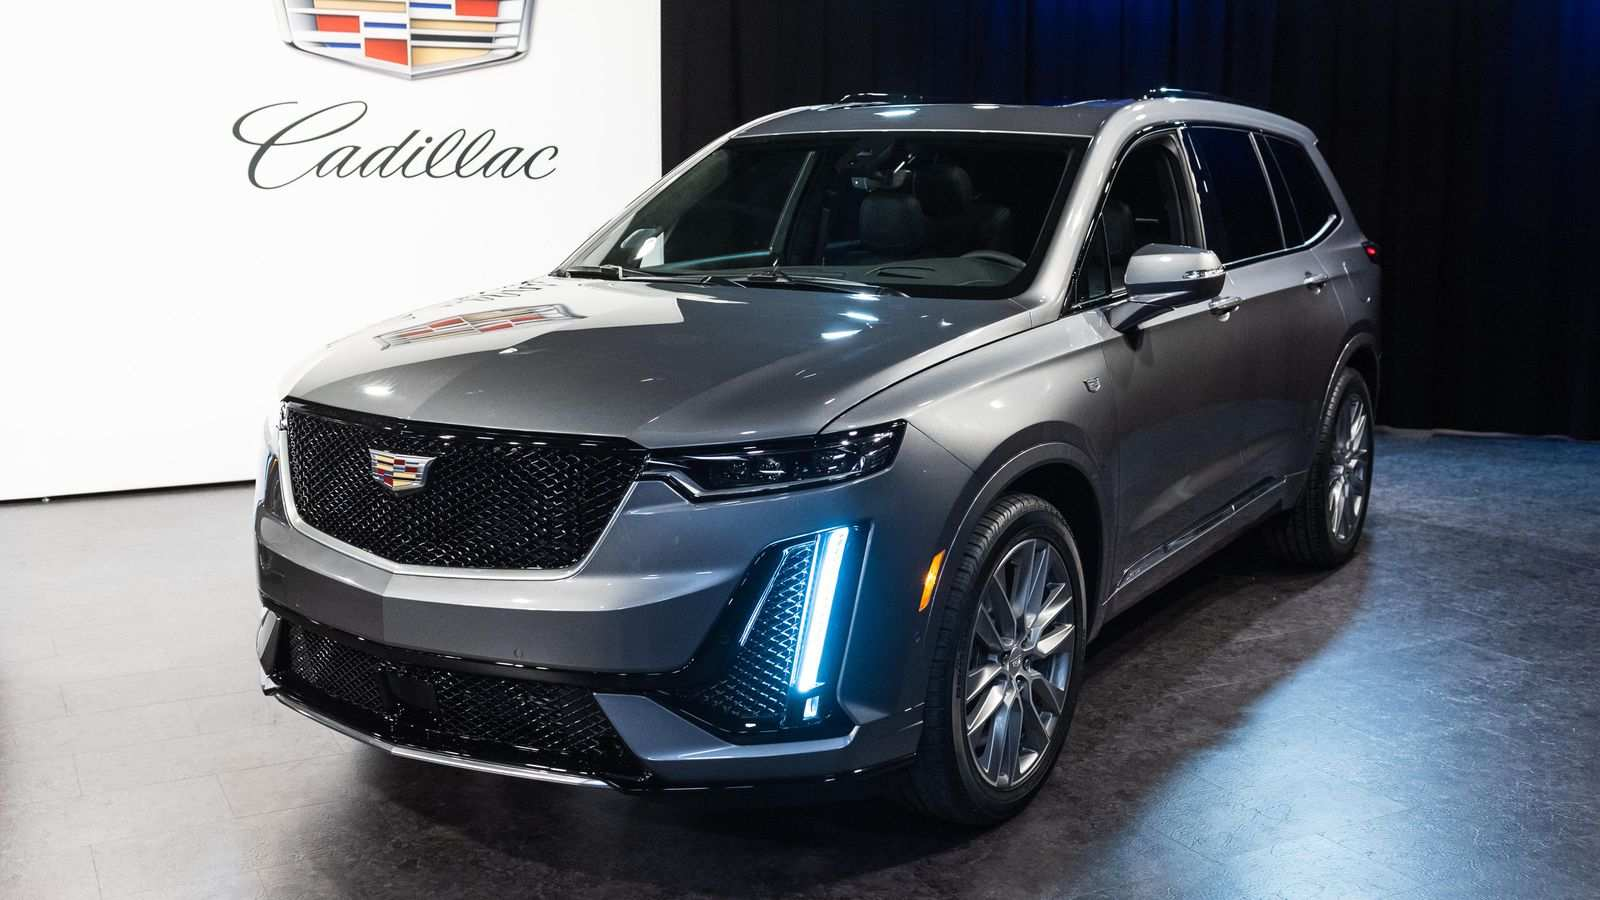 92 All New 2020 Cadillac Xt6 Price Review And Release Date